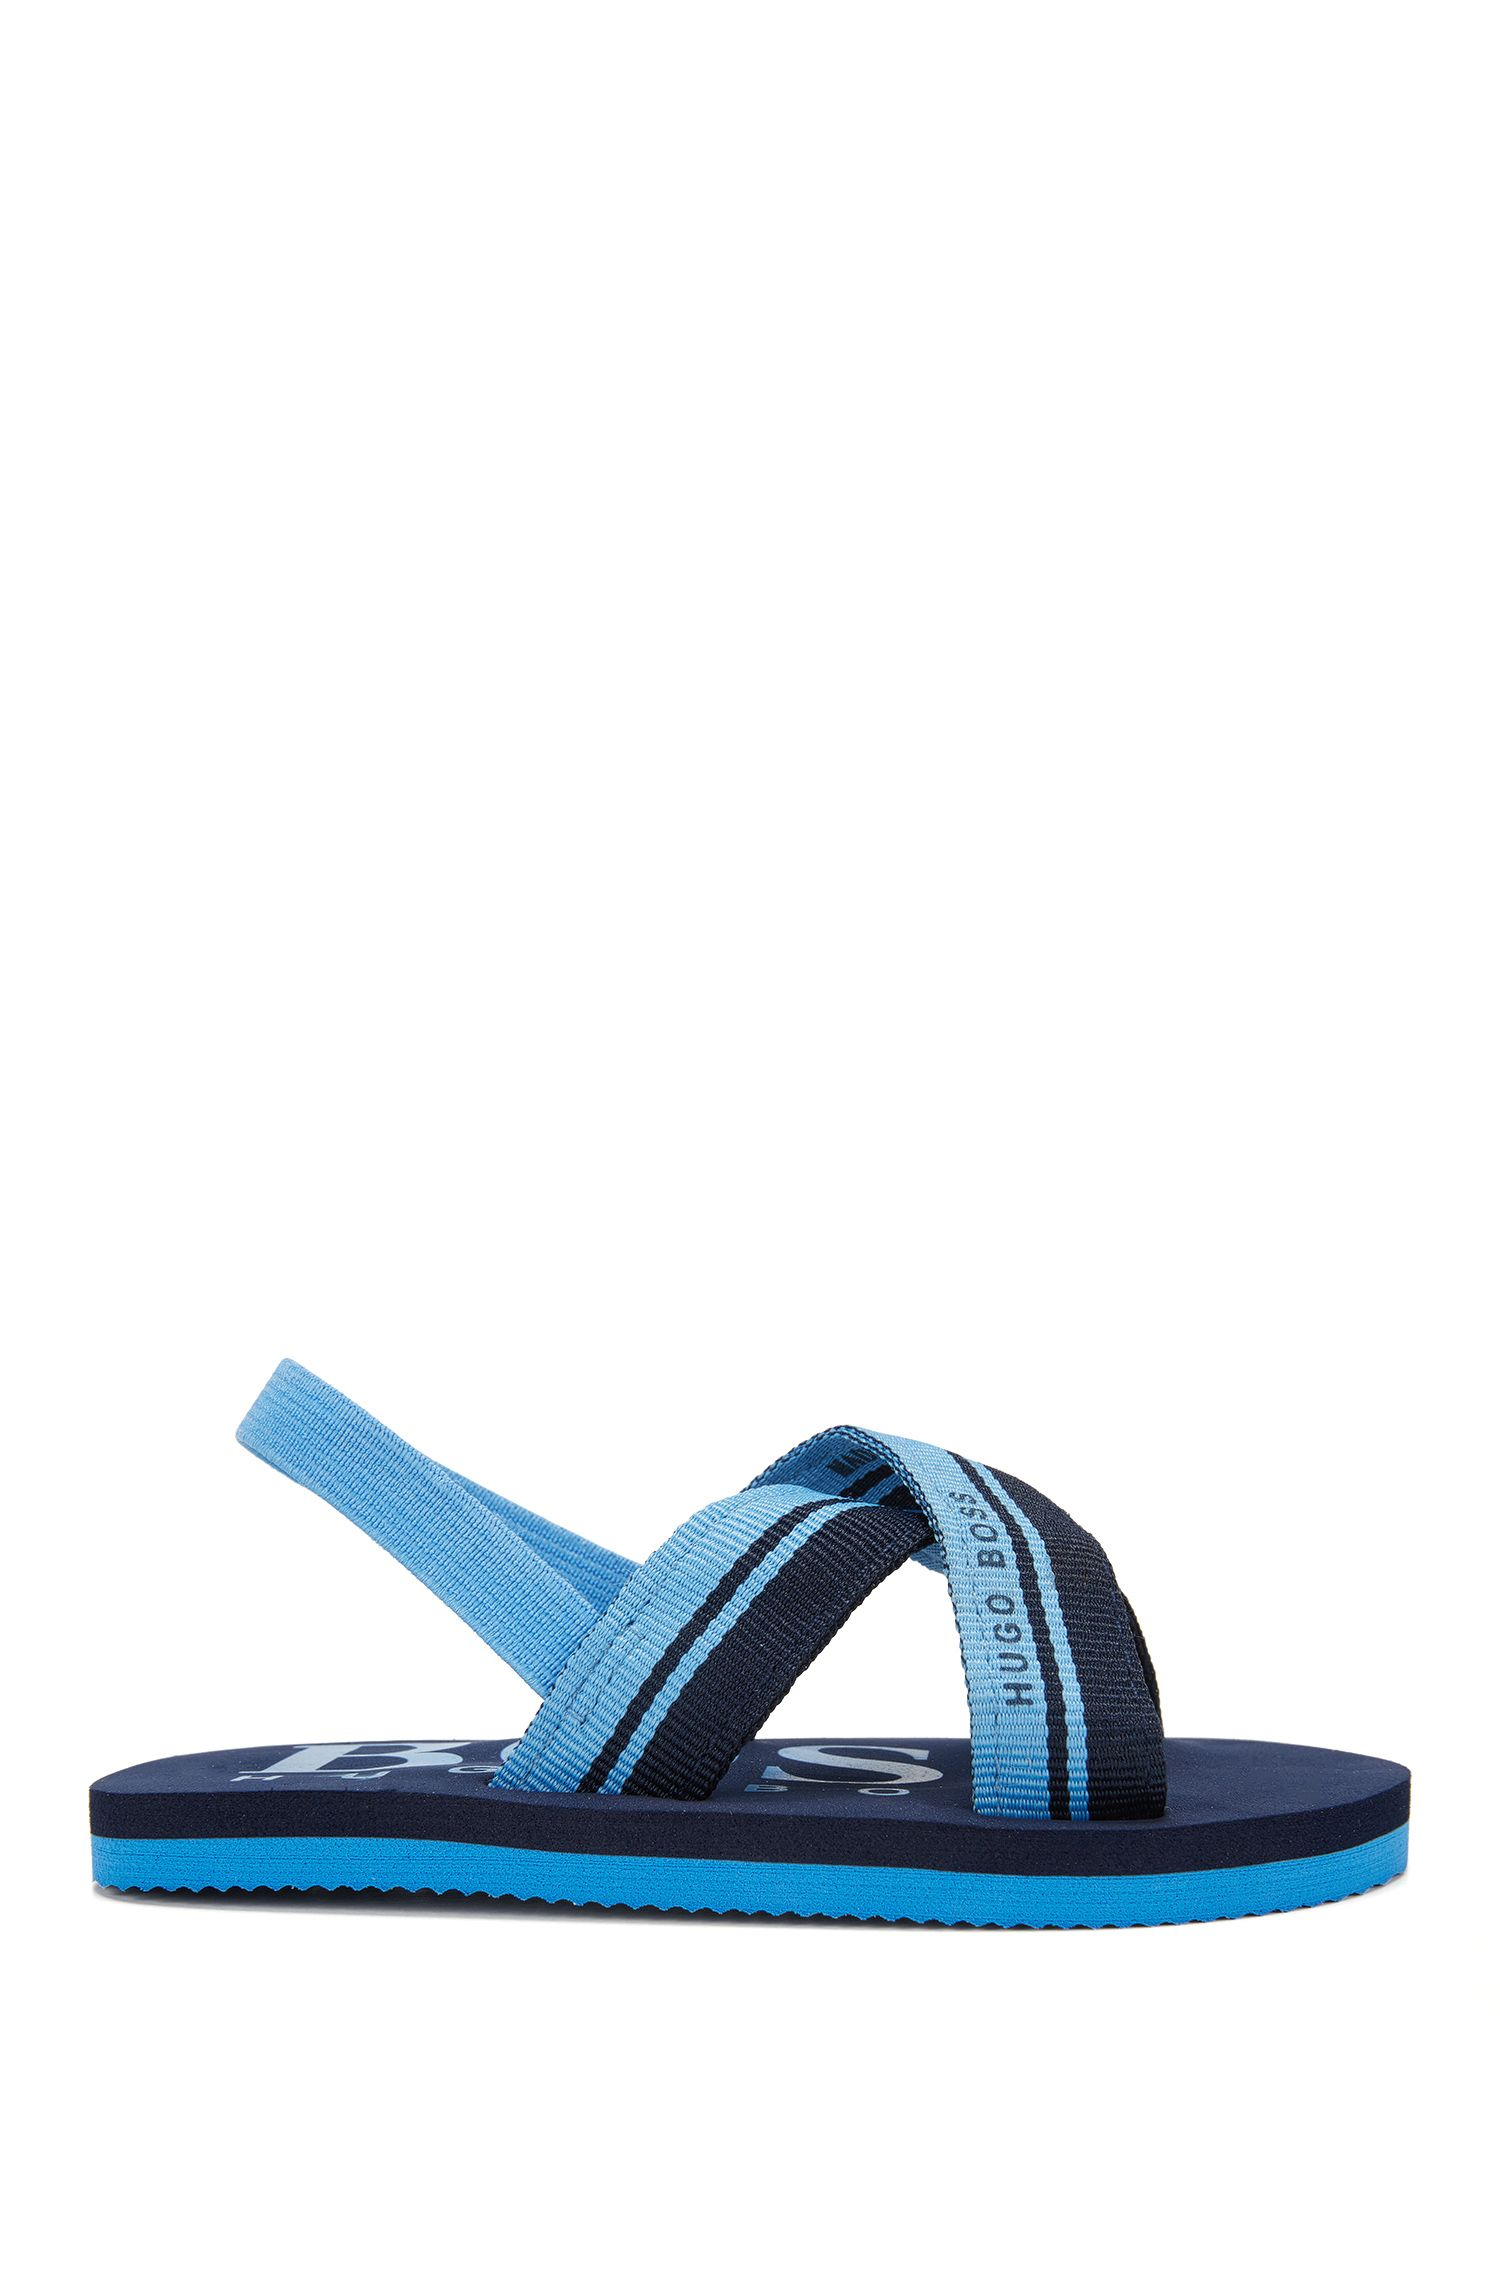 Kids' sandals with elastic: 'J09088'